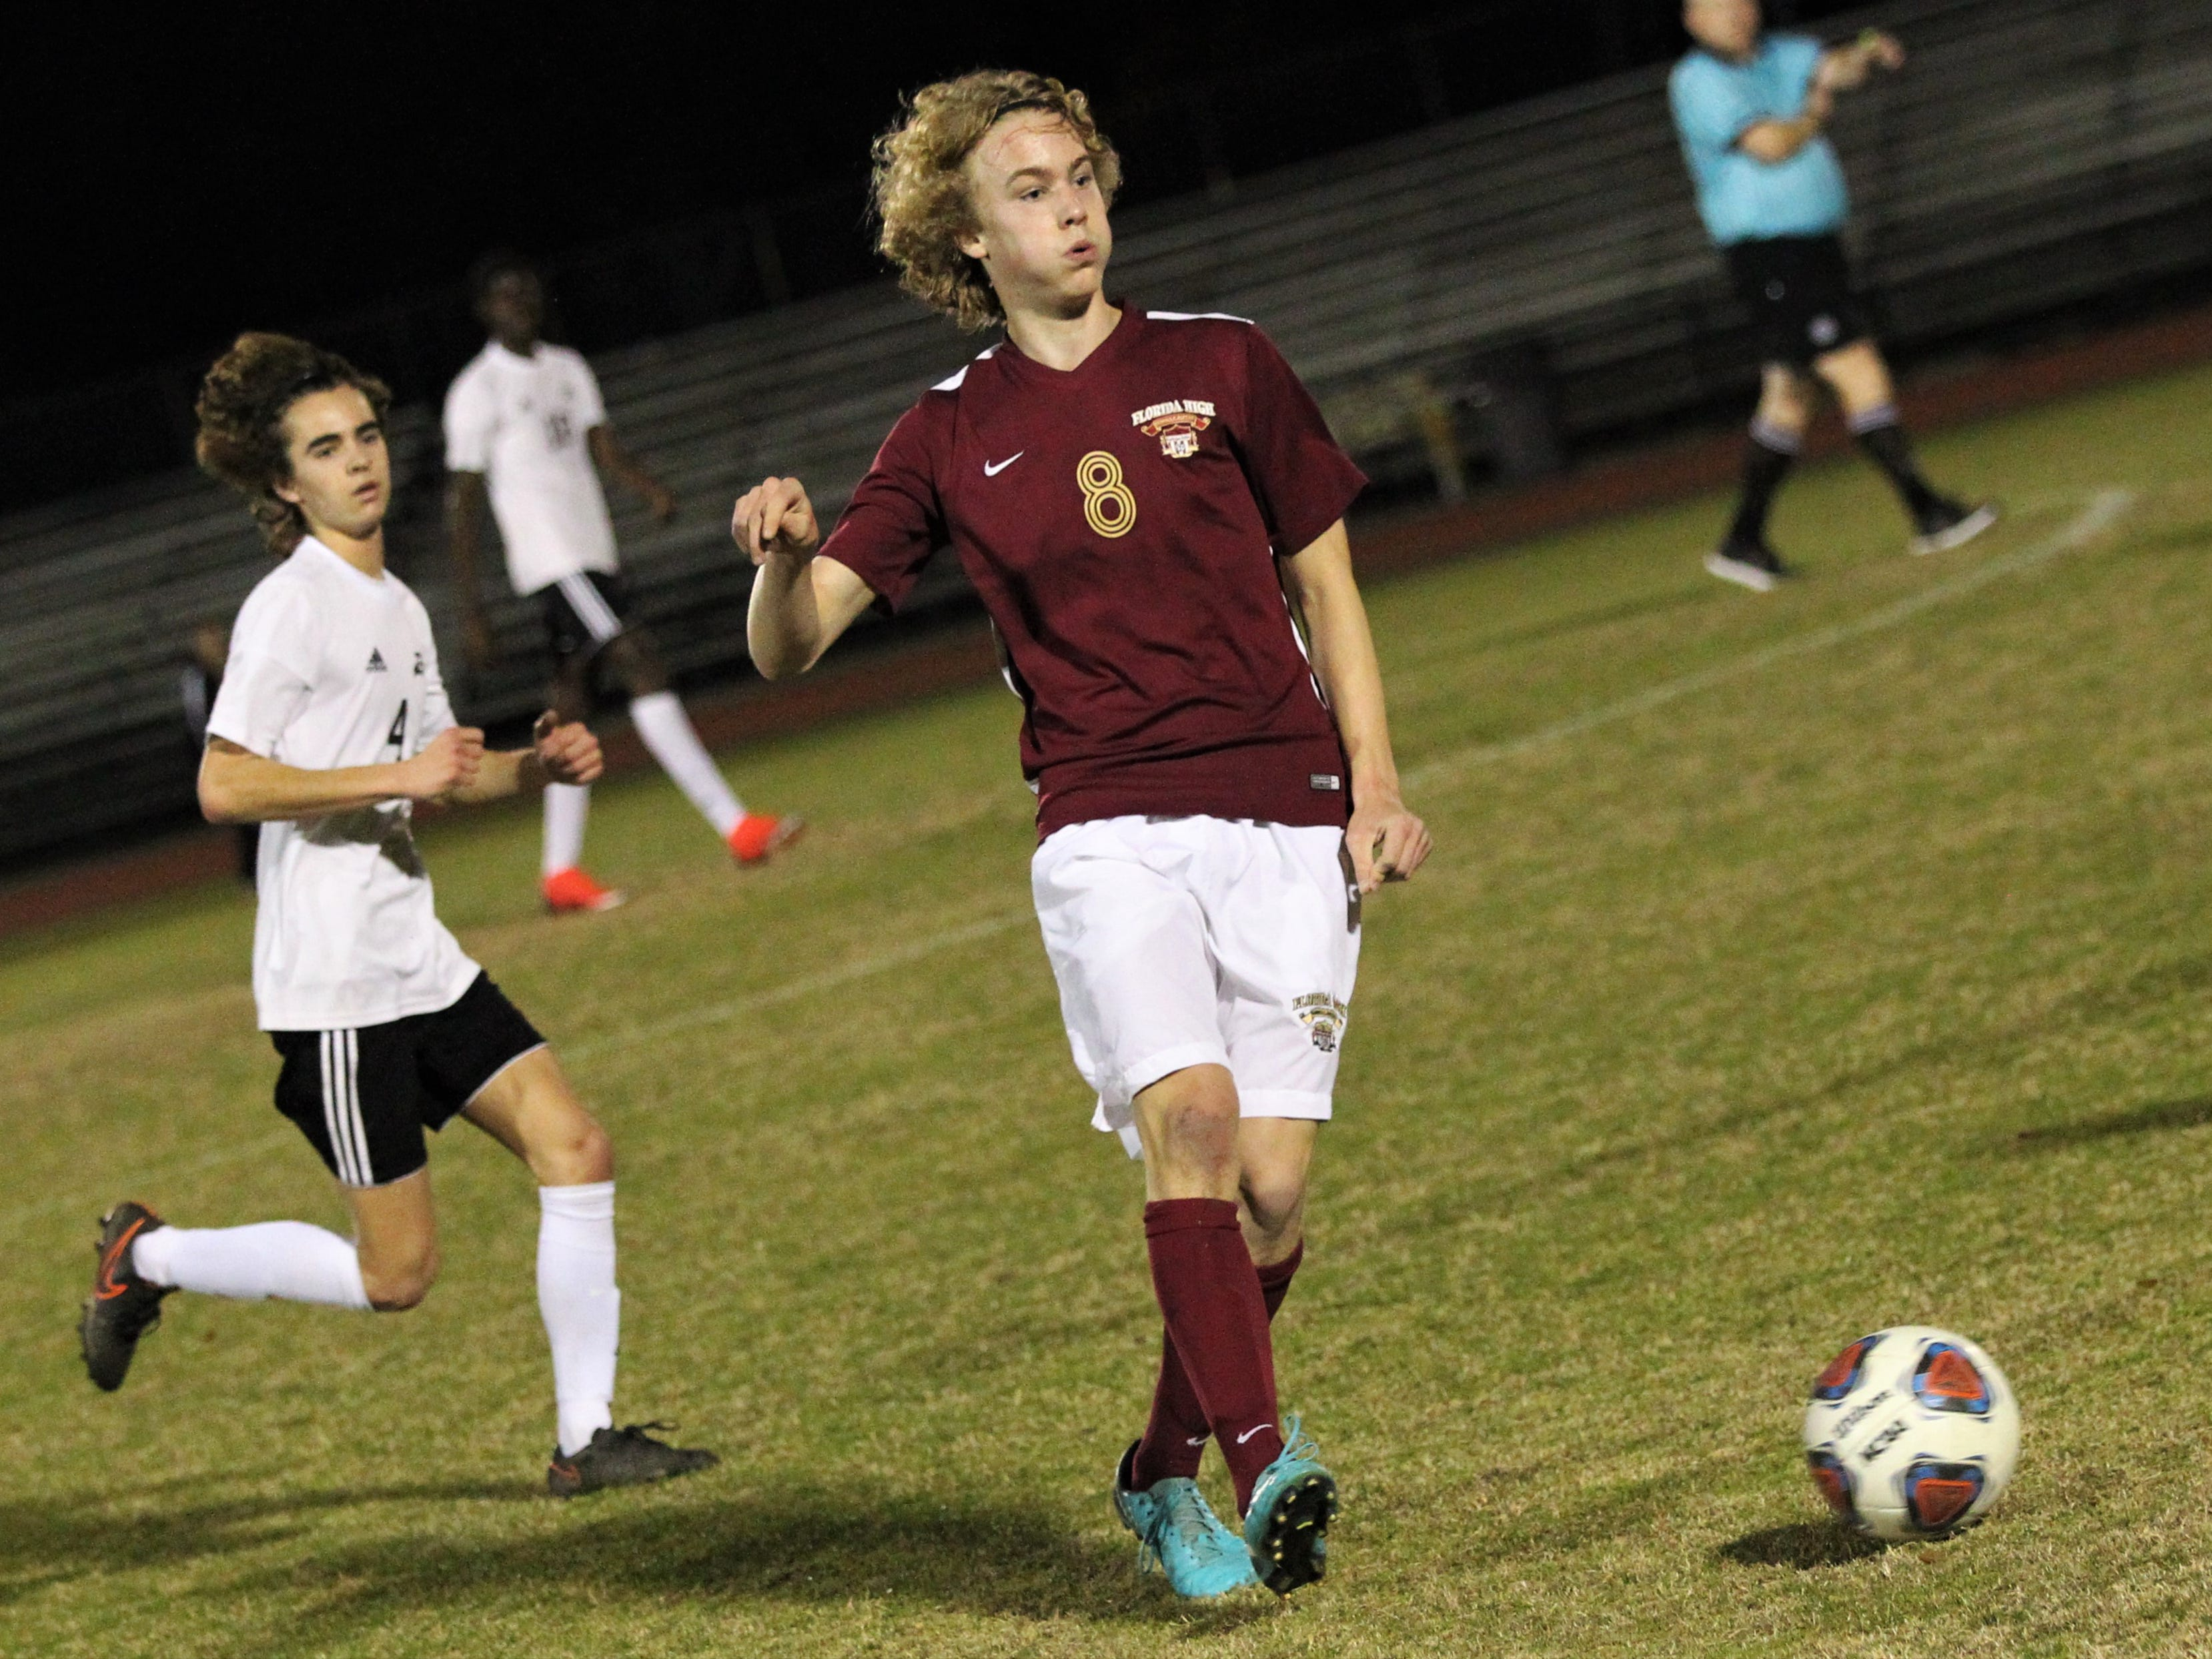 Florida High's Beecher Lewis passes ahead as Florida High's boys soccer team beat South Walton 2-0 during a Region 1-2A quarterfinal on Feb. 6, 2018.